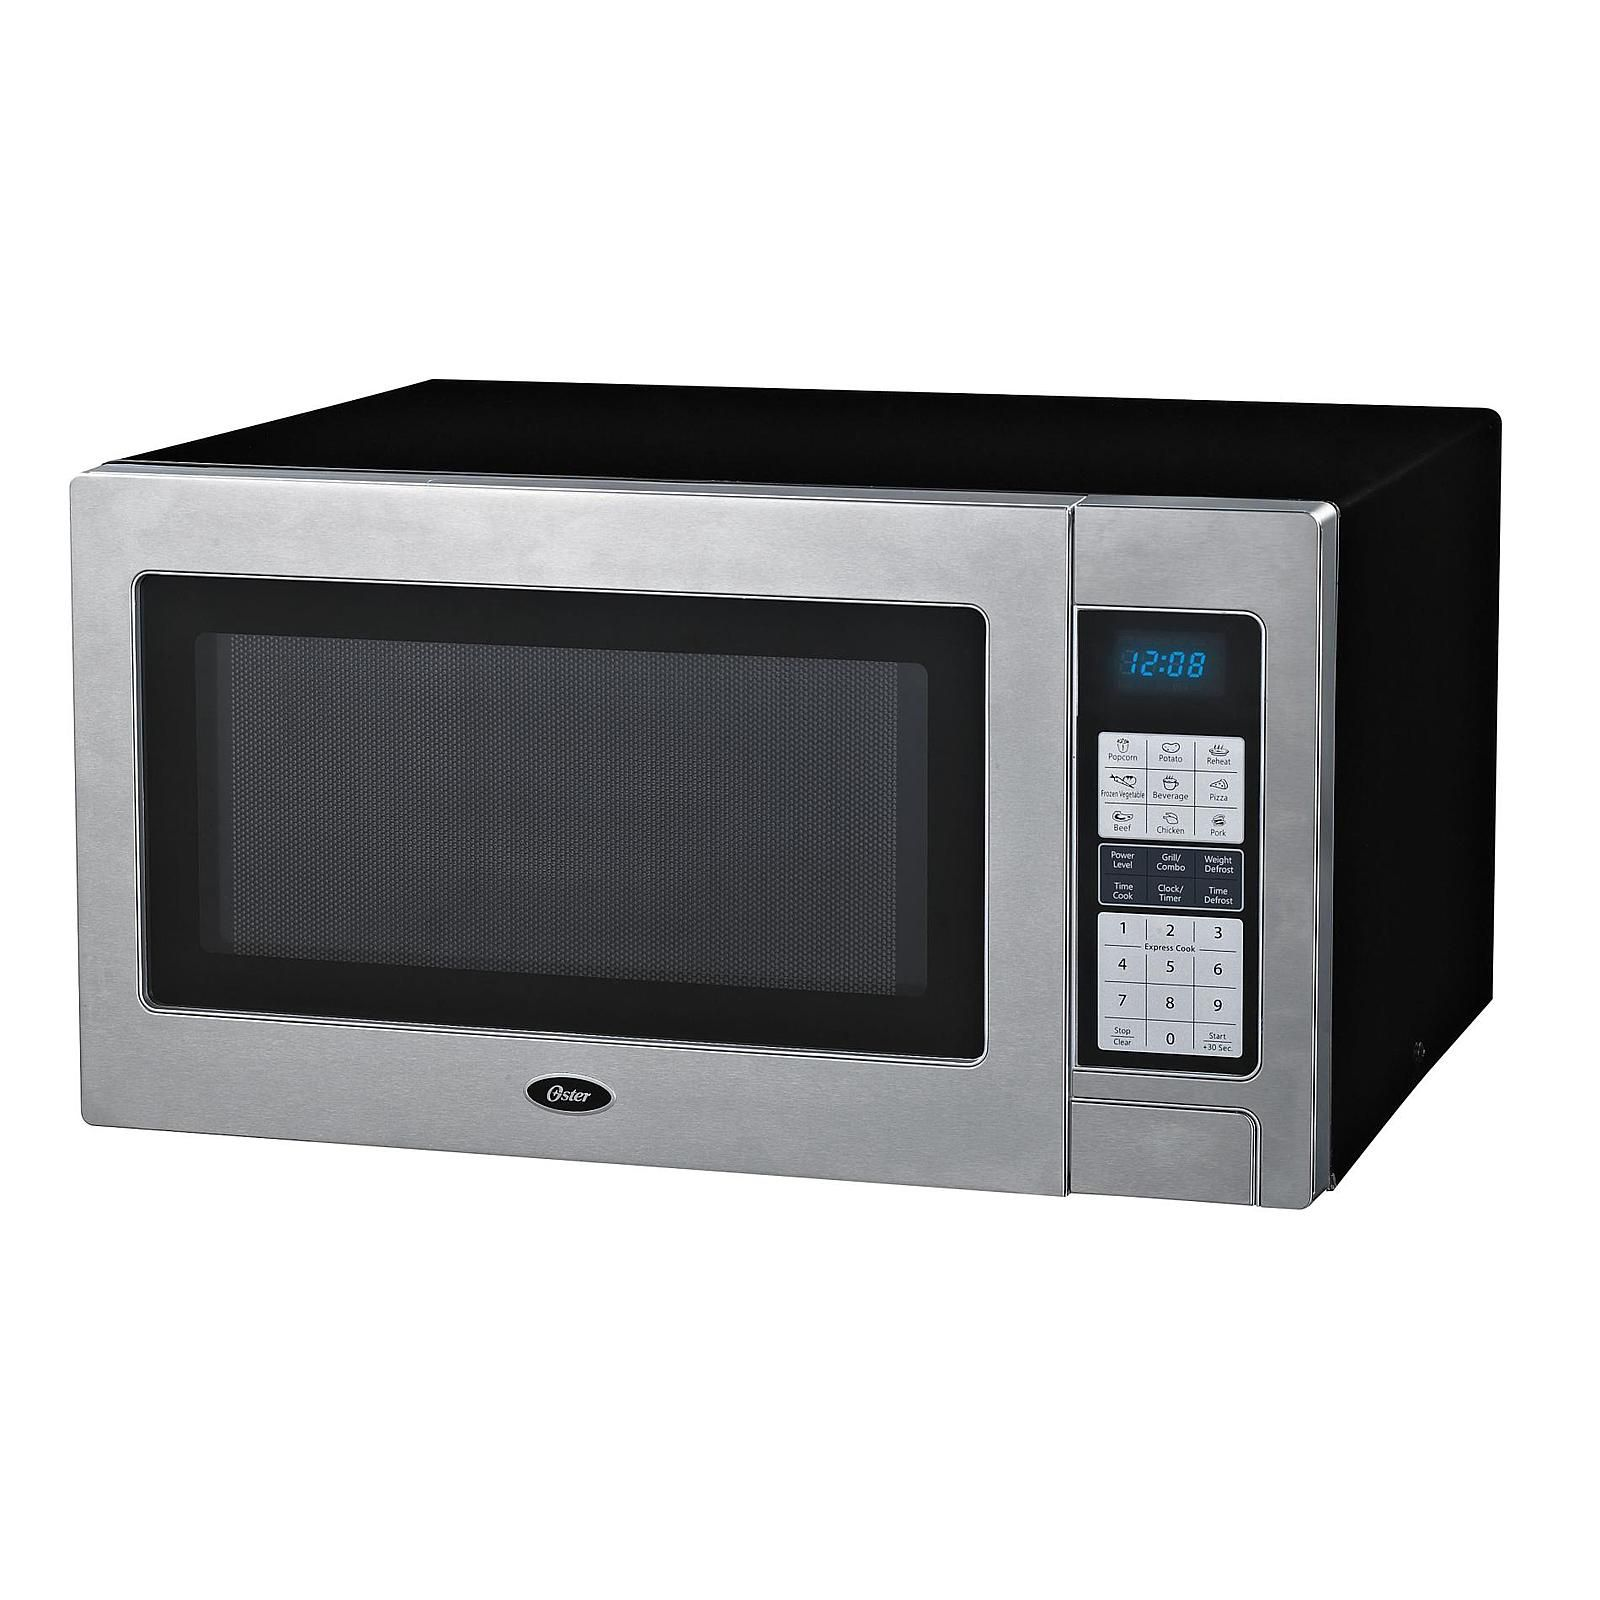 Oster Stainless Steel 1100 Watt Microwave Oven Appliances Microwaves Countertop Microwaves Haverford Home Microwave Oven Oster Microwave Kitchen Co